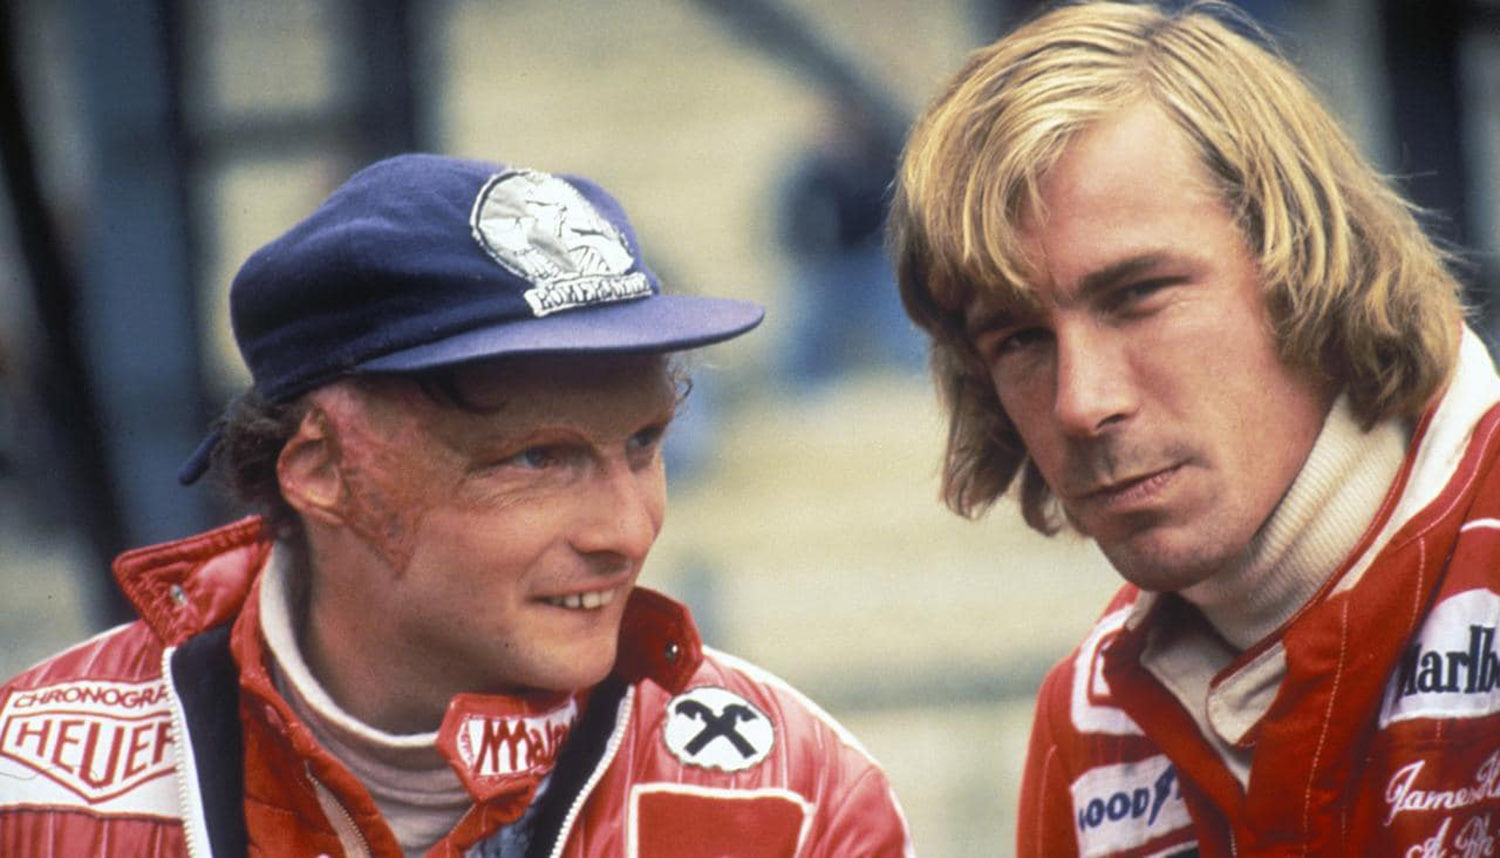 1976_Formula_1_James_Hunt_Niki_Lauda_Rivalry_and_Comradery_at_the_same_time